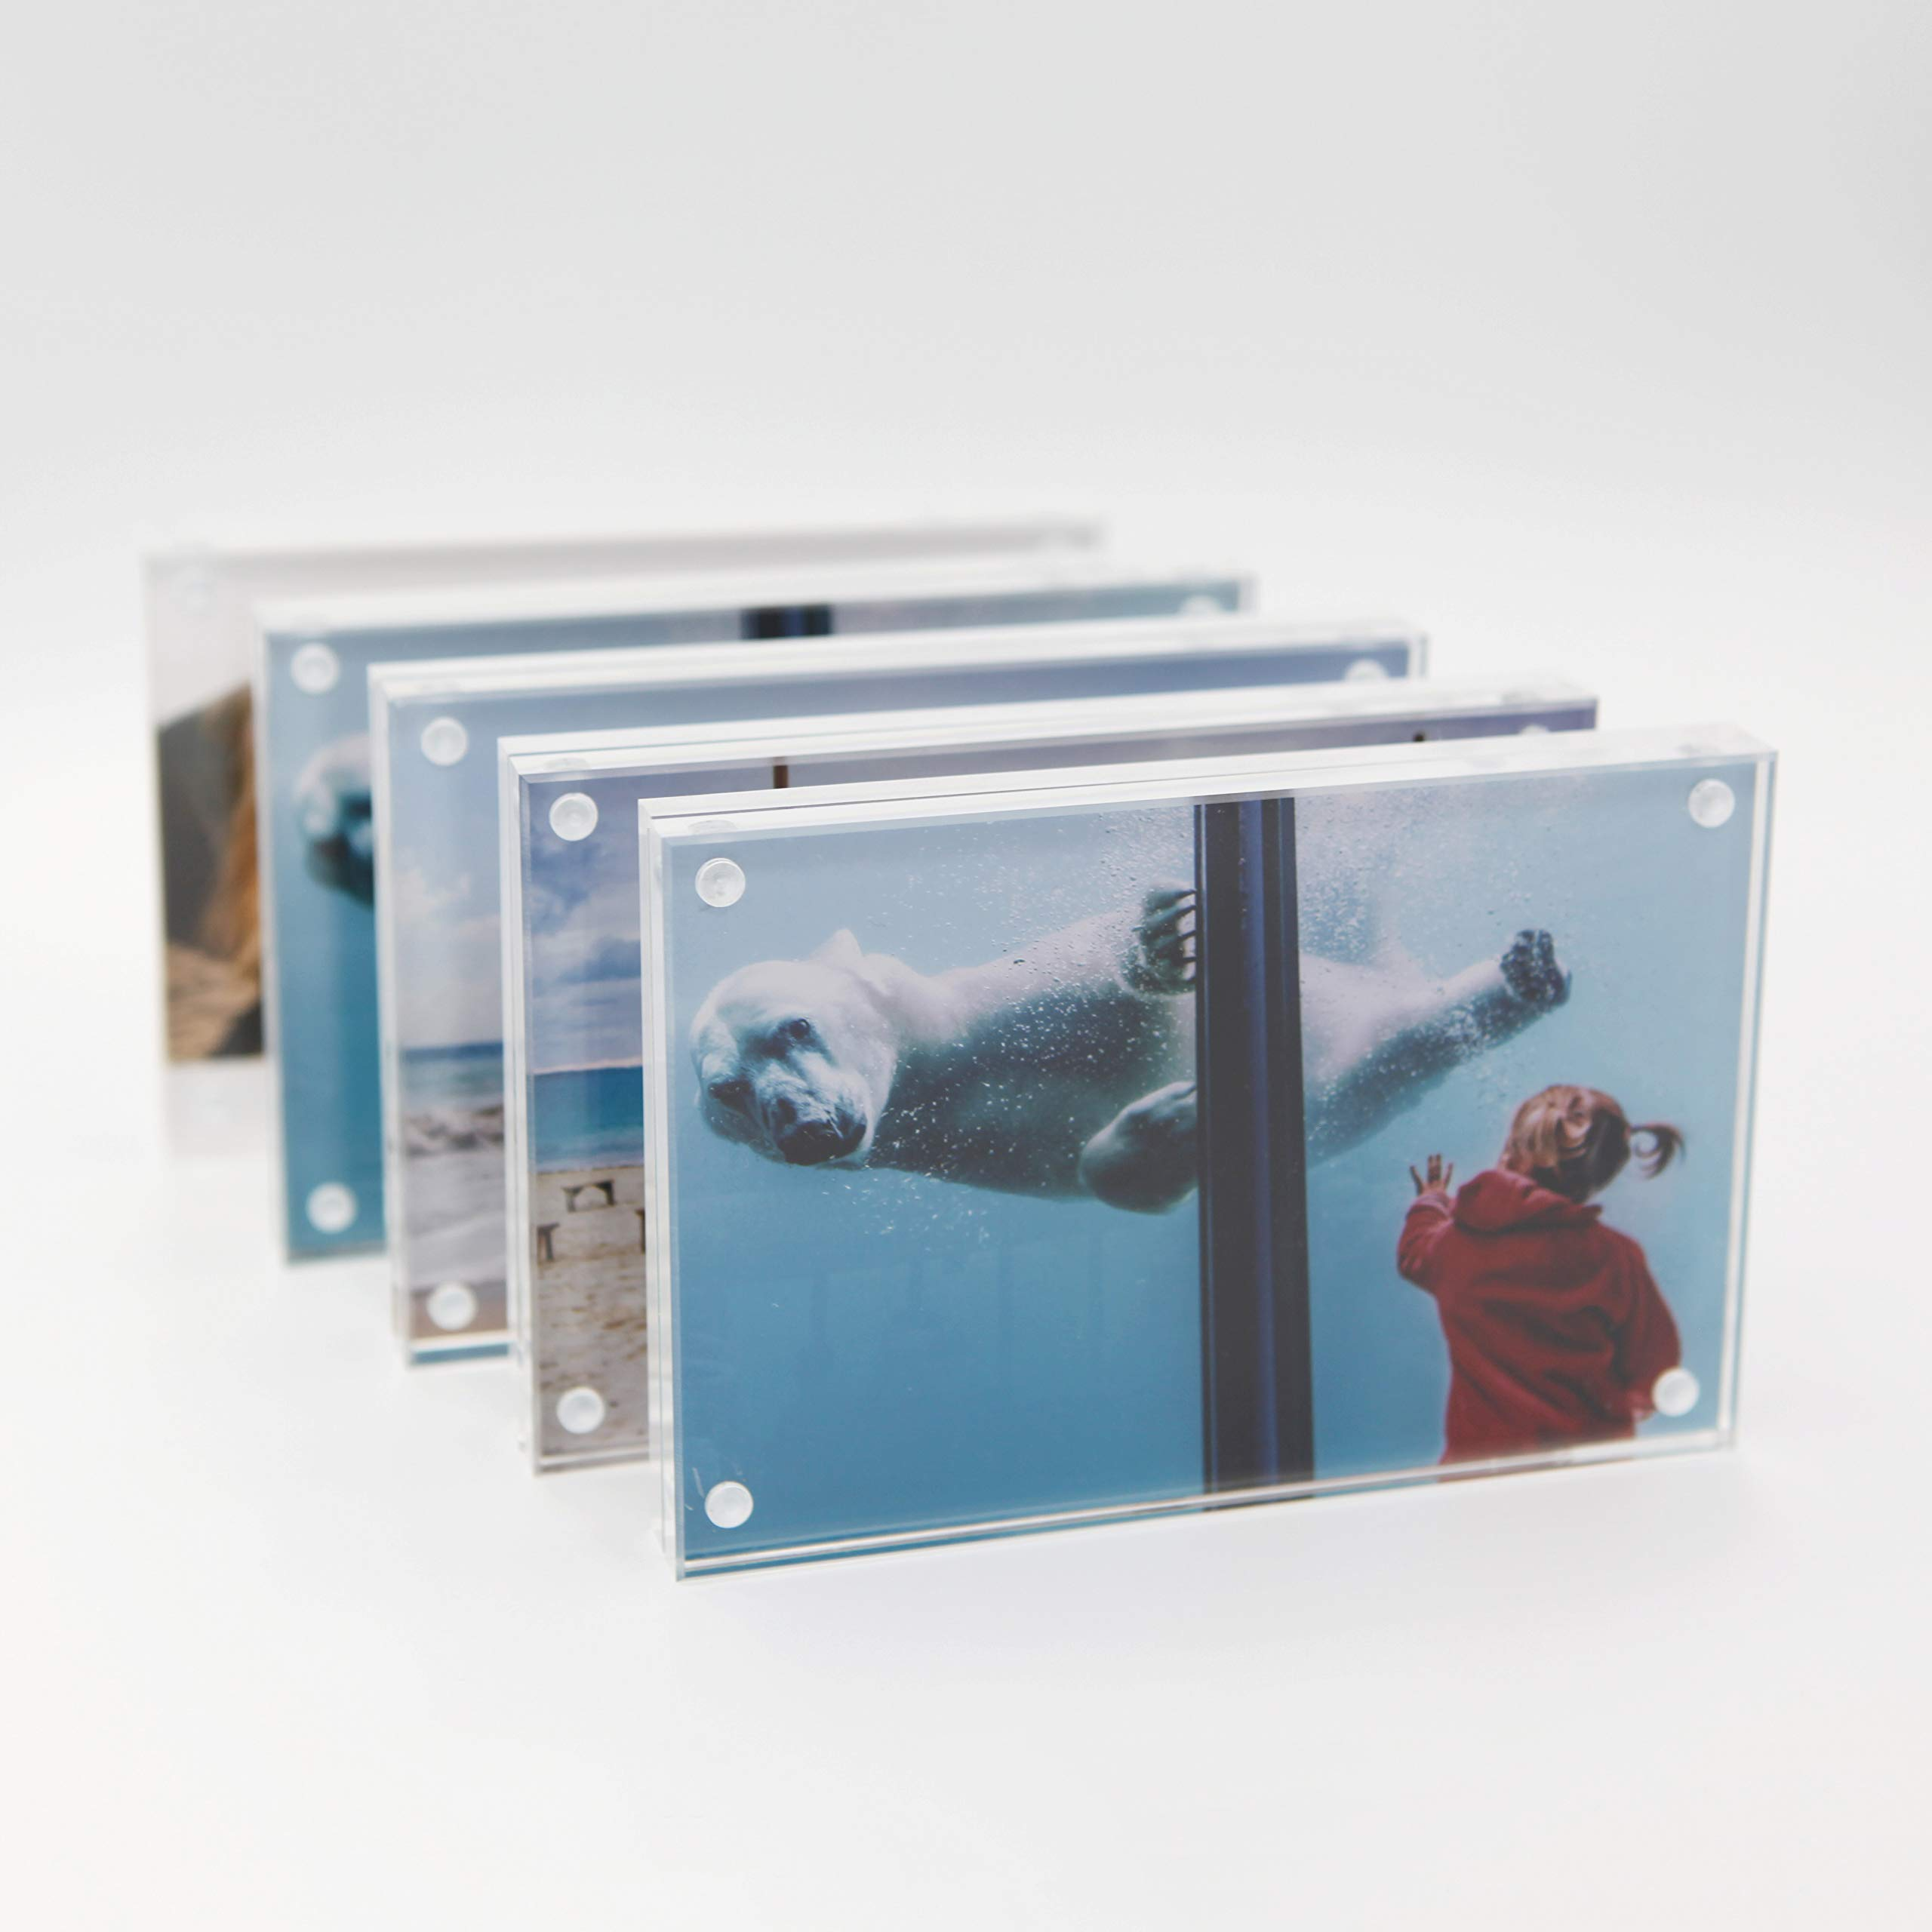 TOOLSURE 5x7 Acrylic Picture Frames,Floating Frame with Gift Box Package 5PACK by TOOLSURE